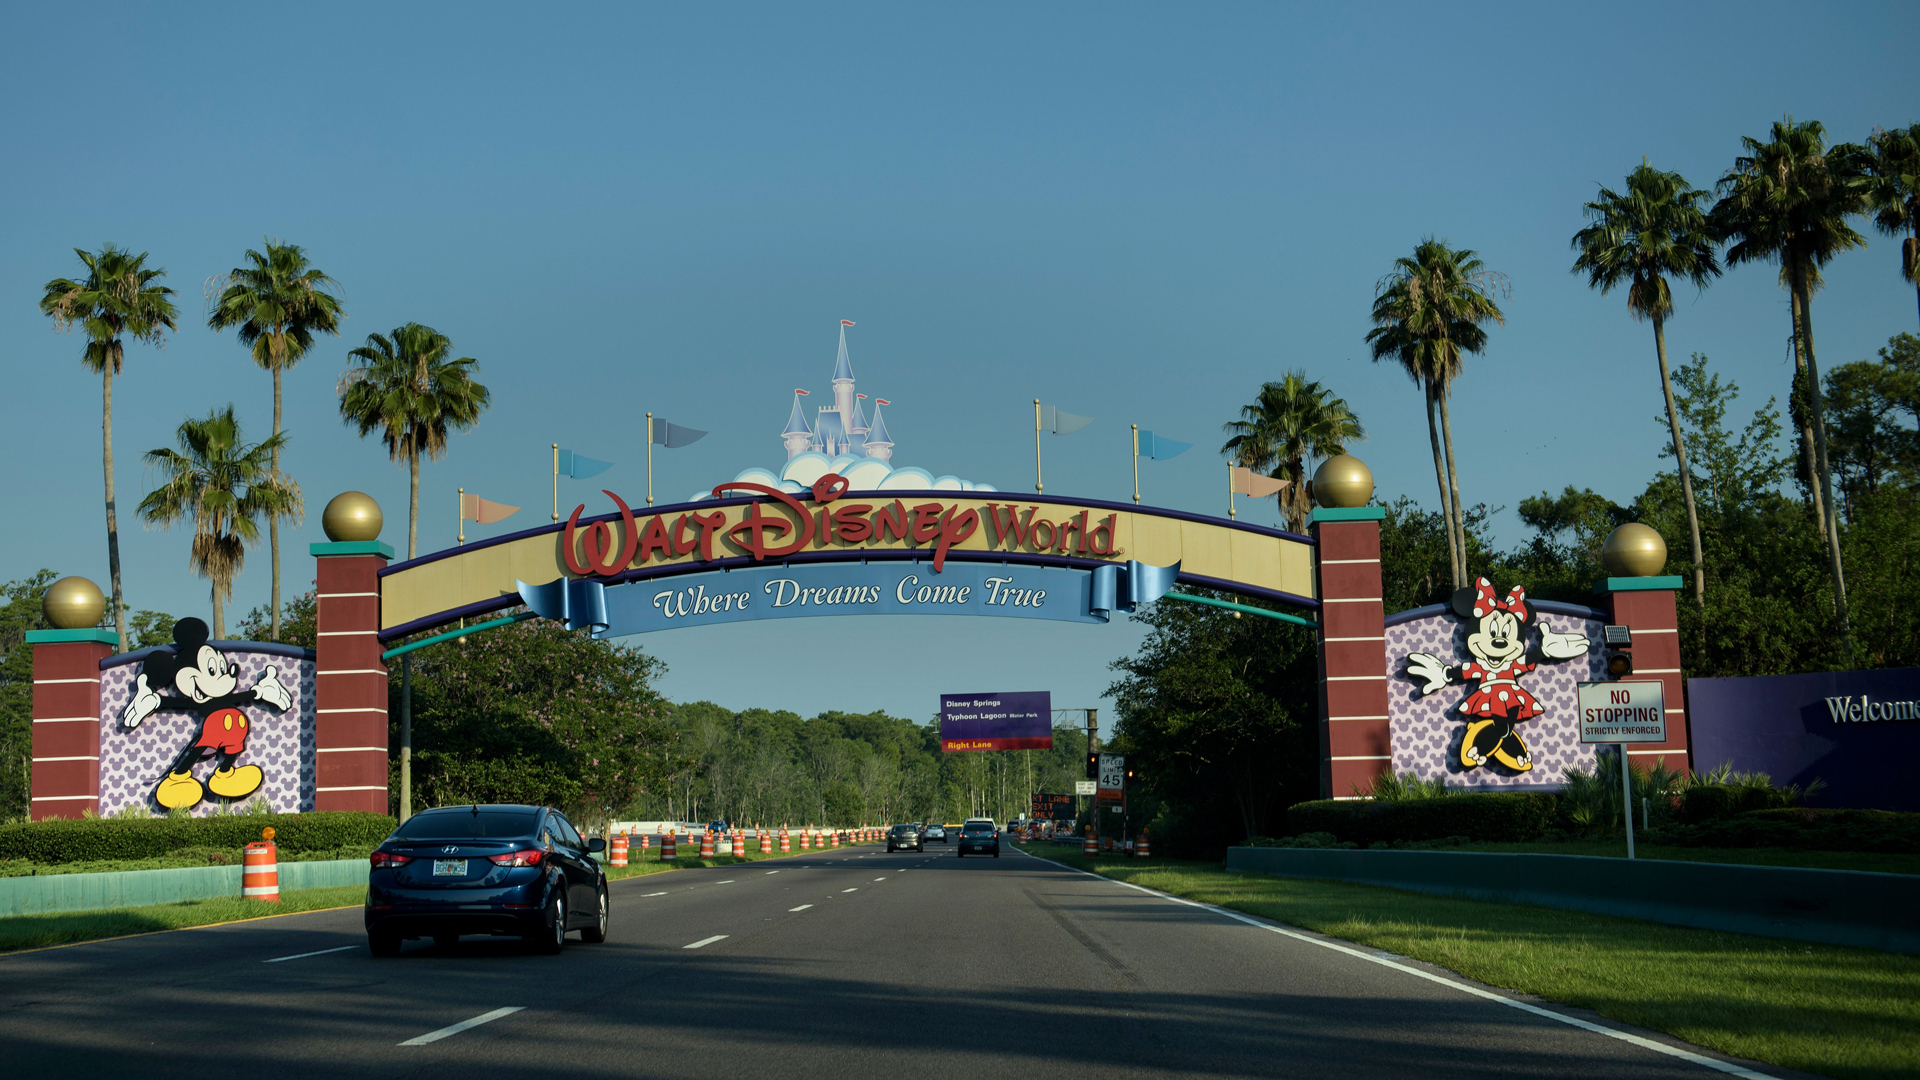 The entrance to the Walt Disney World theme park is seen June 15, 2016 in Orlando, Florida. (Credit: BRENDAN SMIALOWSKI/AFP via Getty Images)